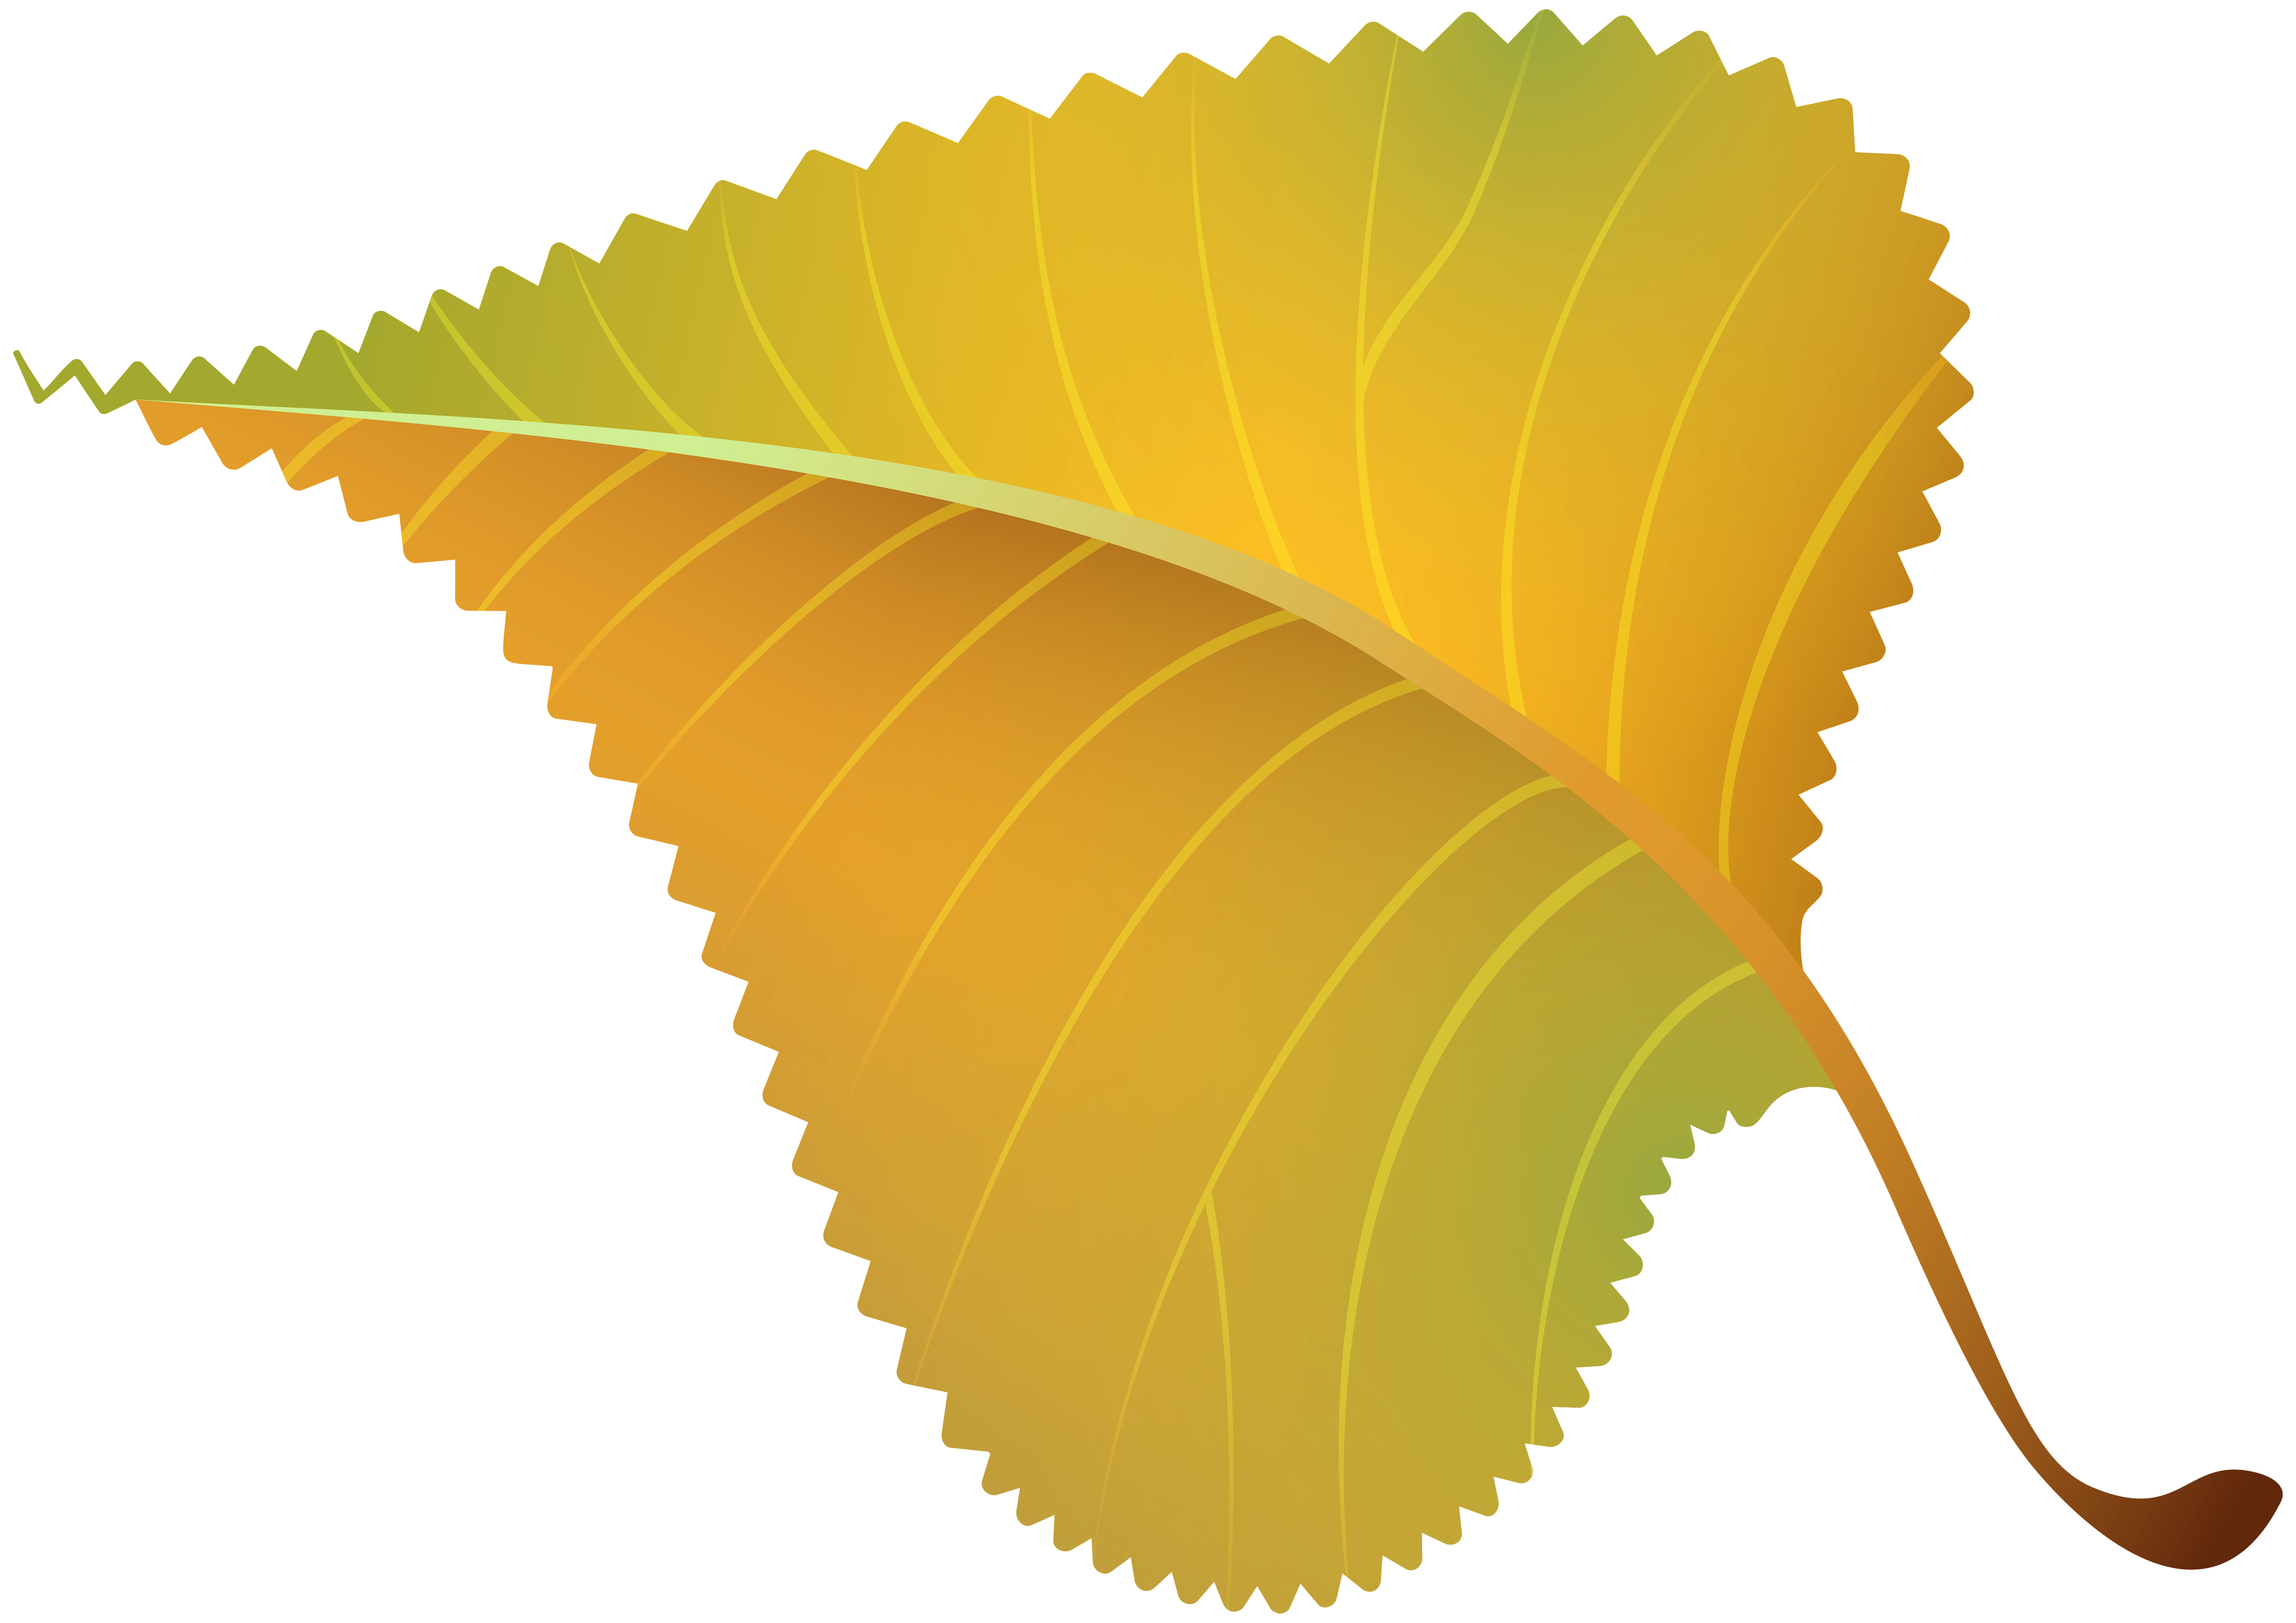 Fall yellow leaf png. Grains clipart wheat leaves